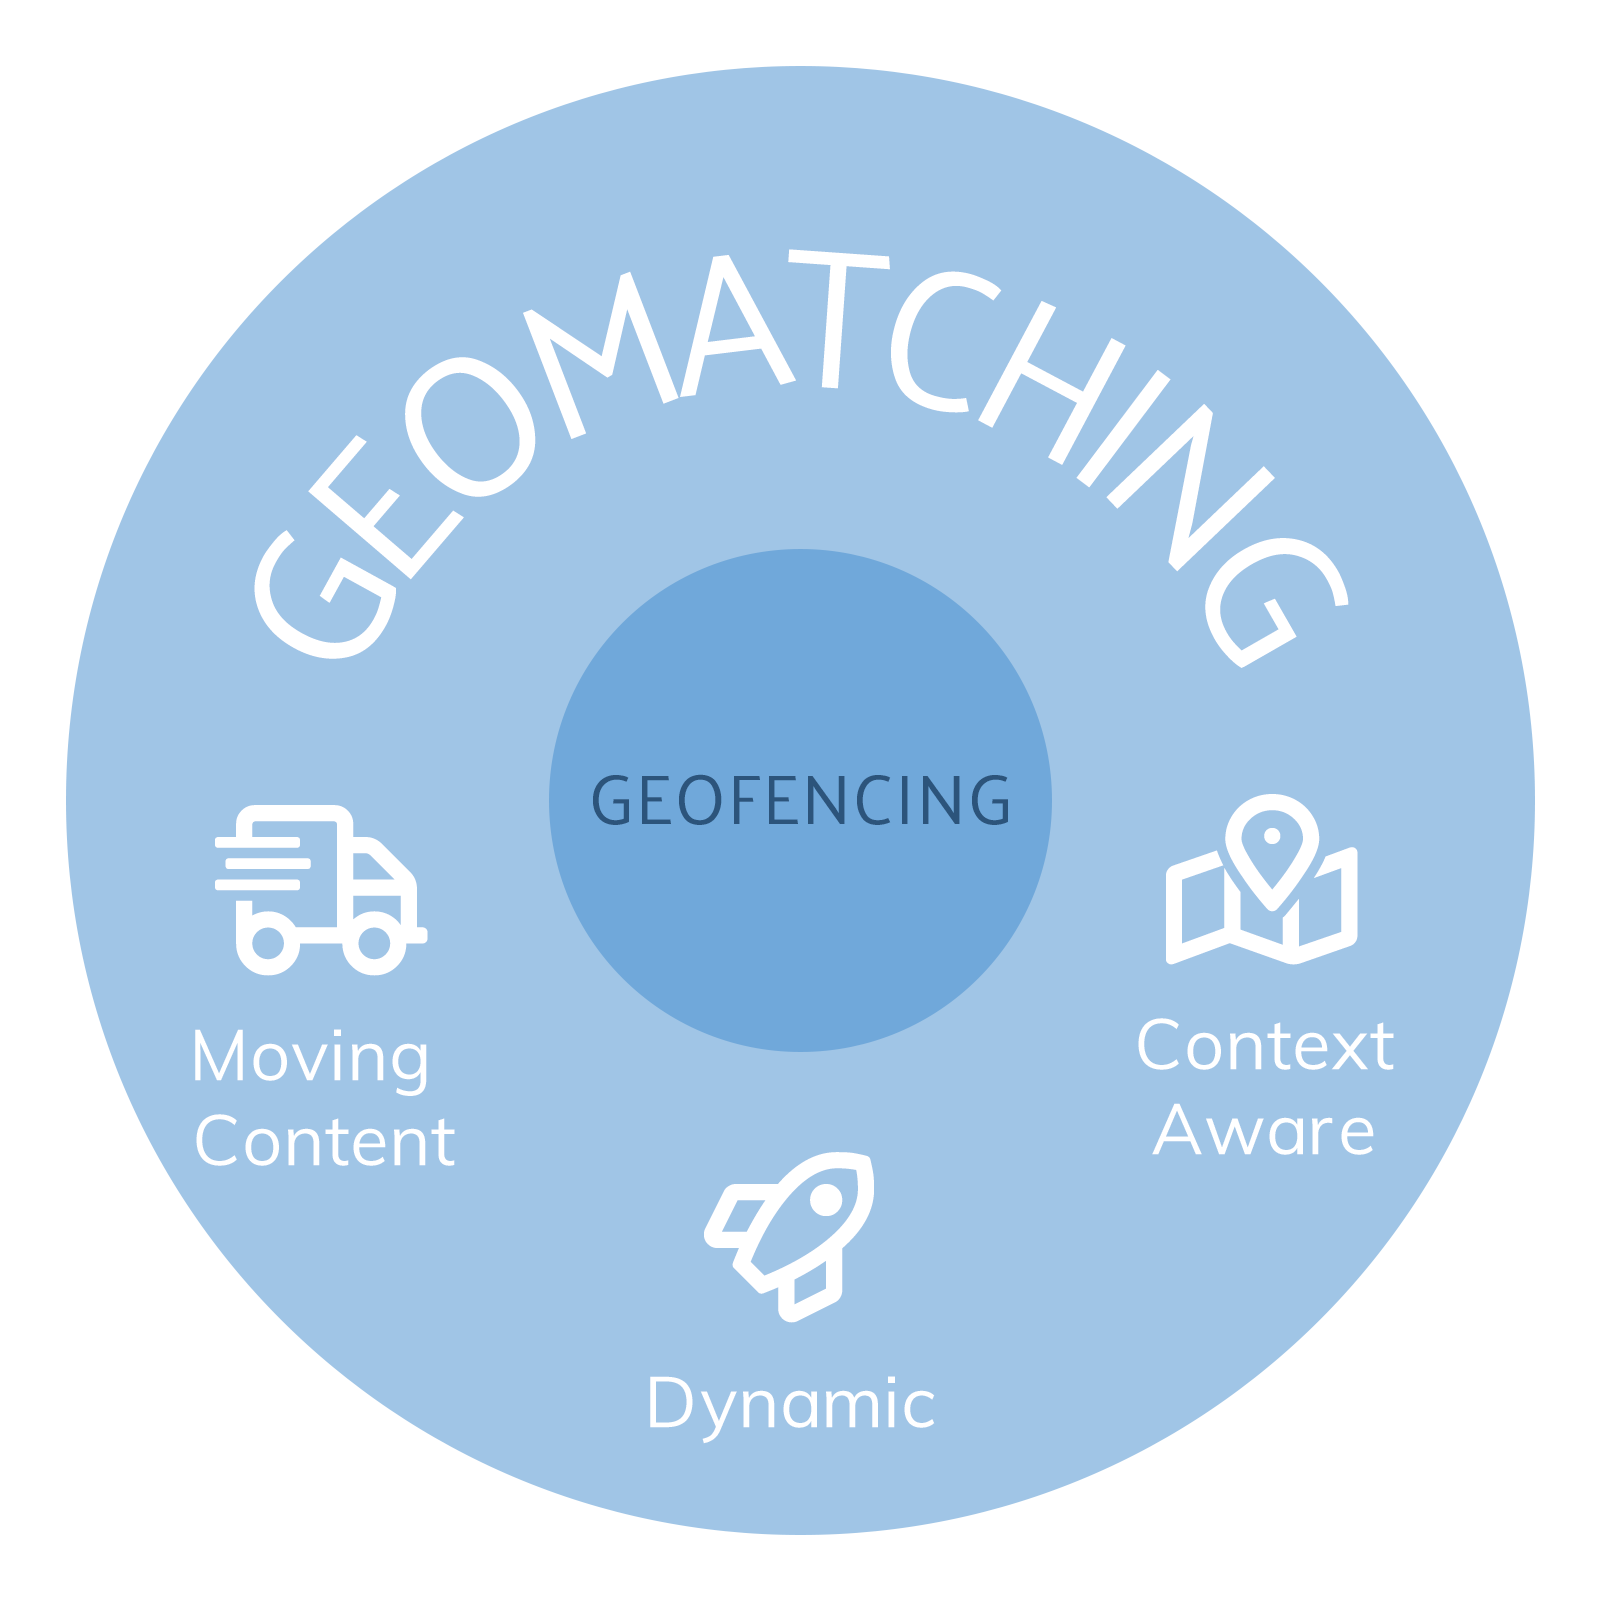 Geomatching is geofencing with added features